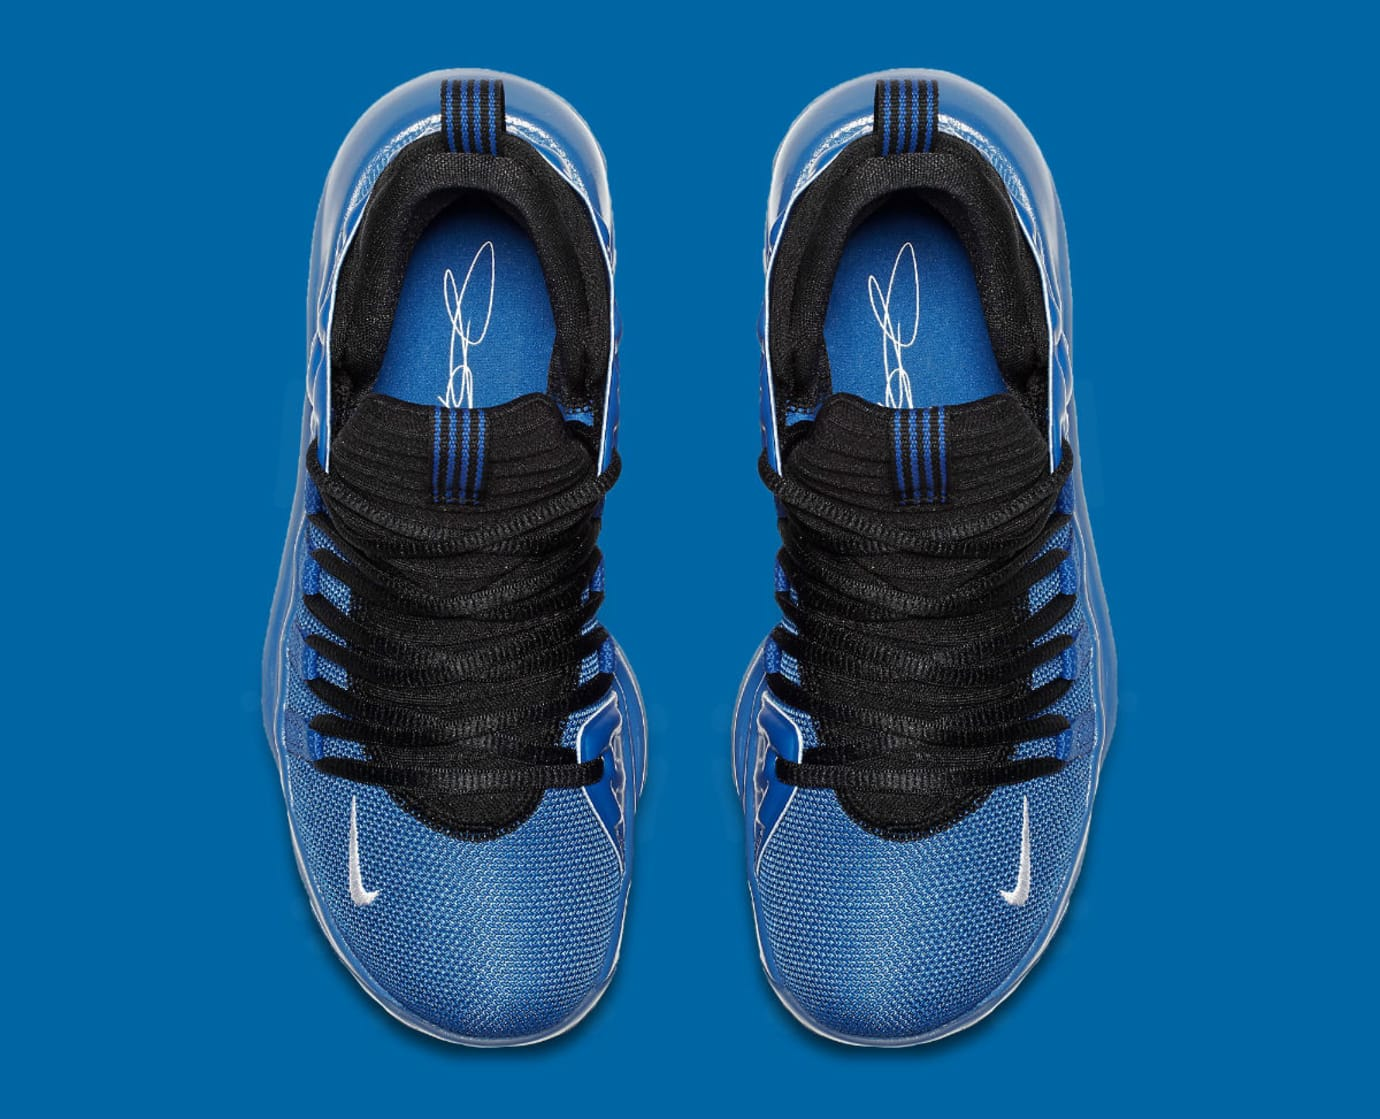 Nike KD 10 GS Foamposite Royal Release Date AJ7220-500 Top